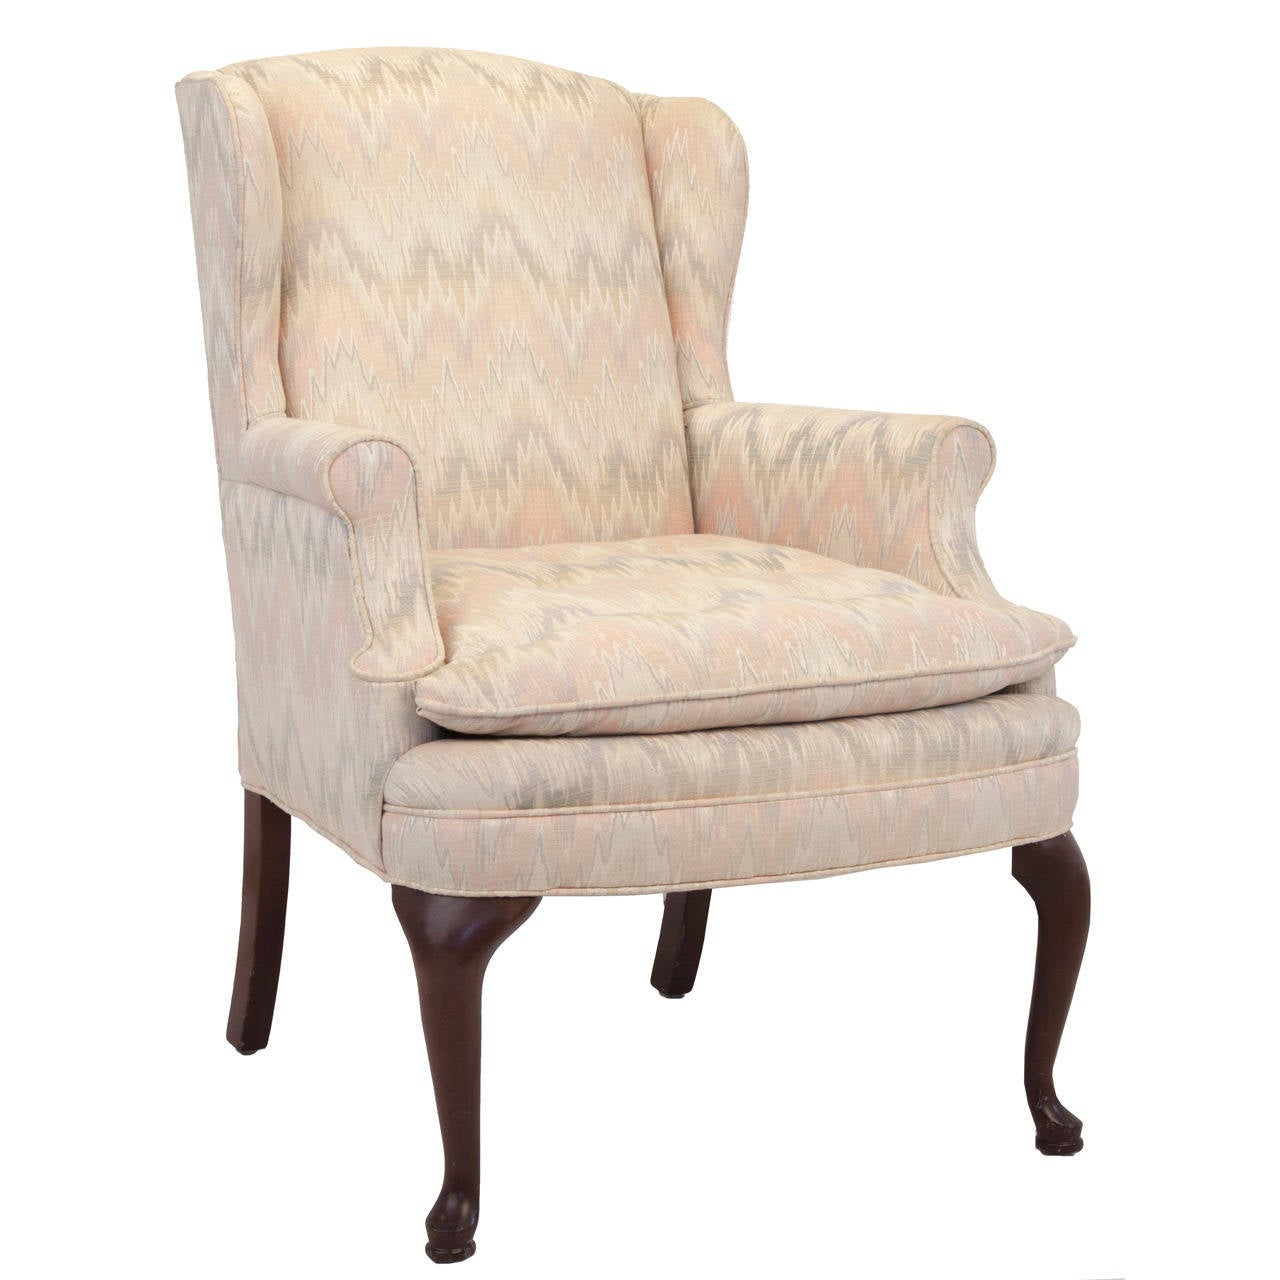 Queen Anne Style Upholstered Wing Chair For Sale  sc 1 st  1stDibs & Queen Anne Style Upholstered Wing Chair For Sale at 1stdibs